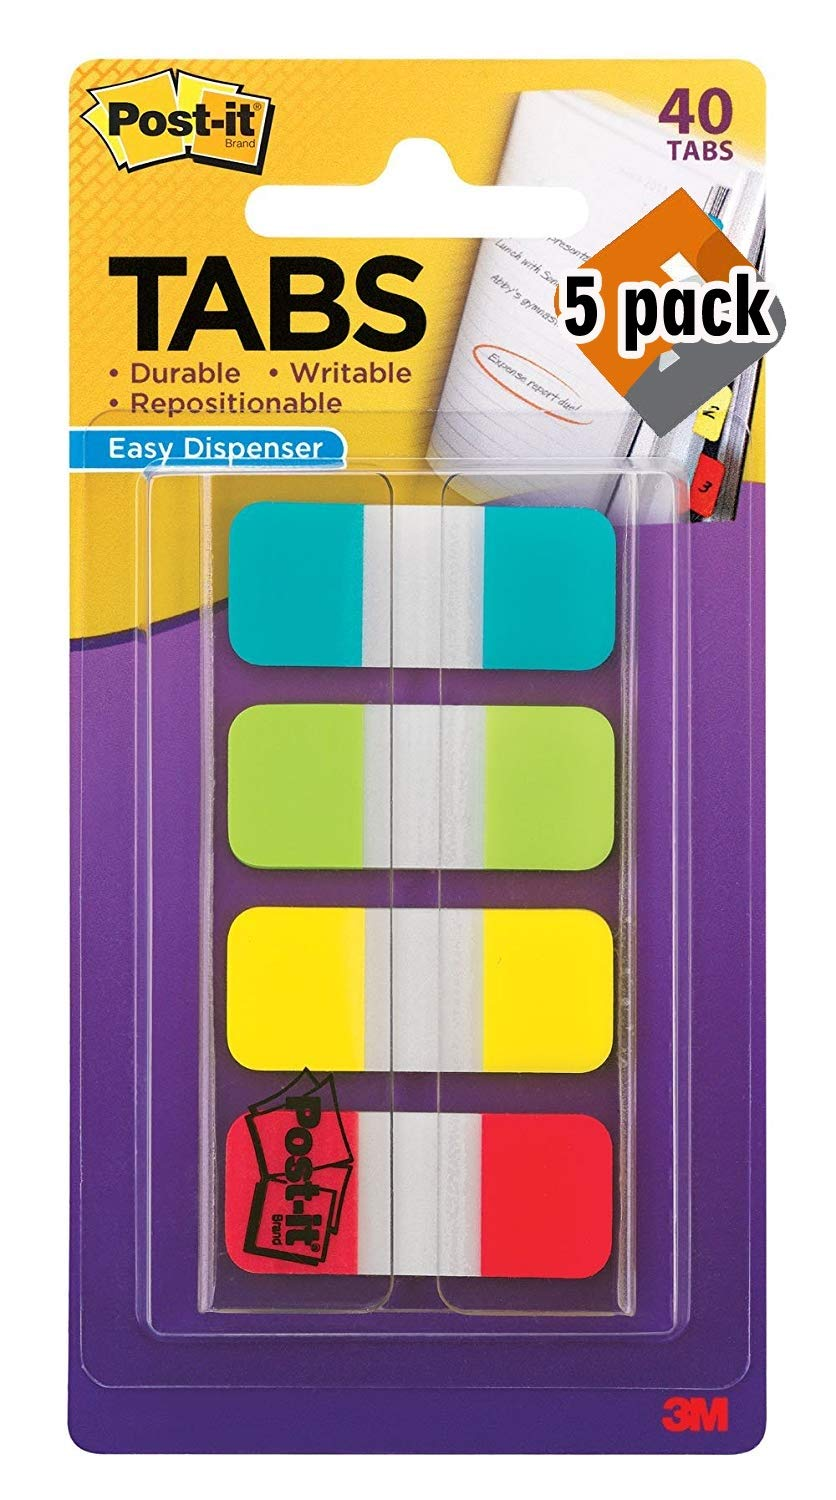 Post-it Tabs.625 in. Solid, Aqua, Lime, Yellow, Red, Durable, Writable, Repositionable, Sticks Securely, Removes Cleanly, 10/Color, 40/Dispenser, (676-ALYR) - Pack 5 by Post-it